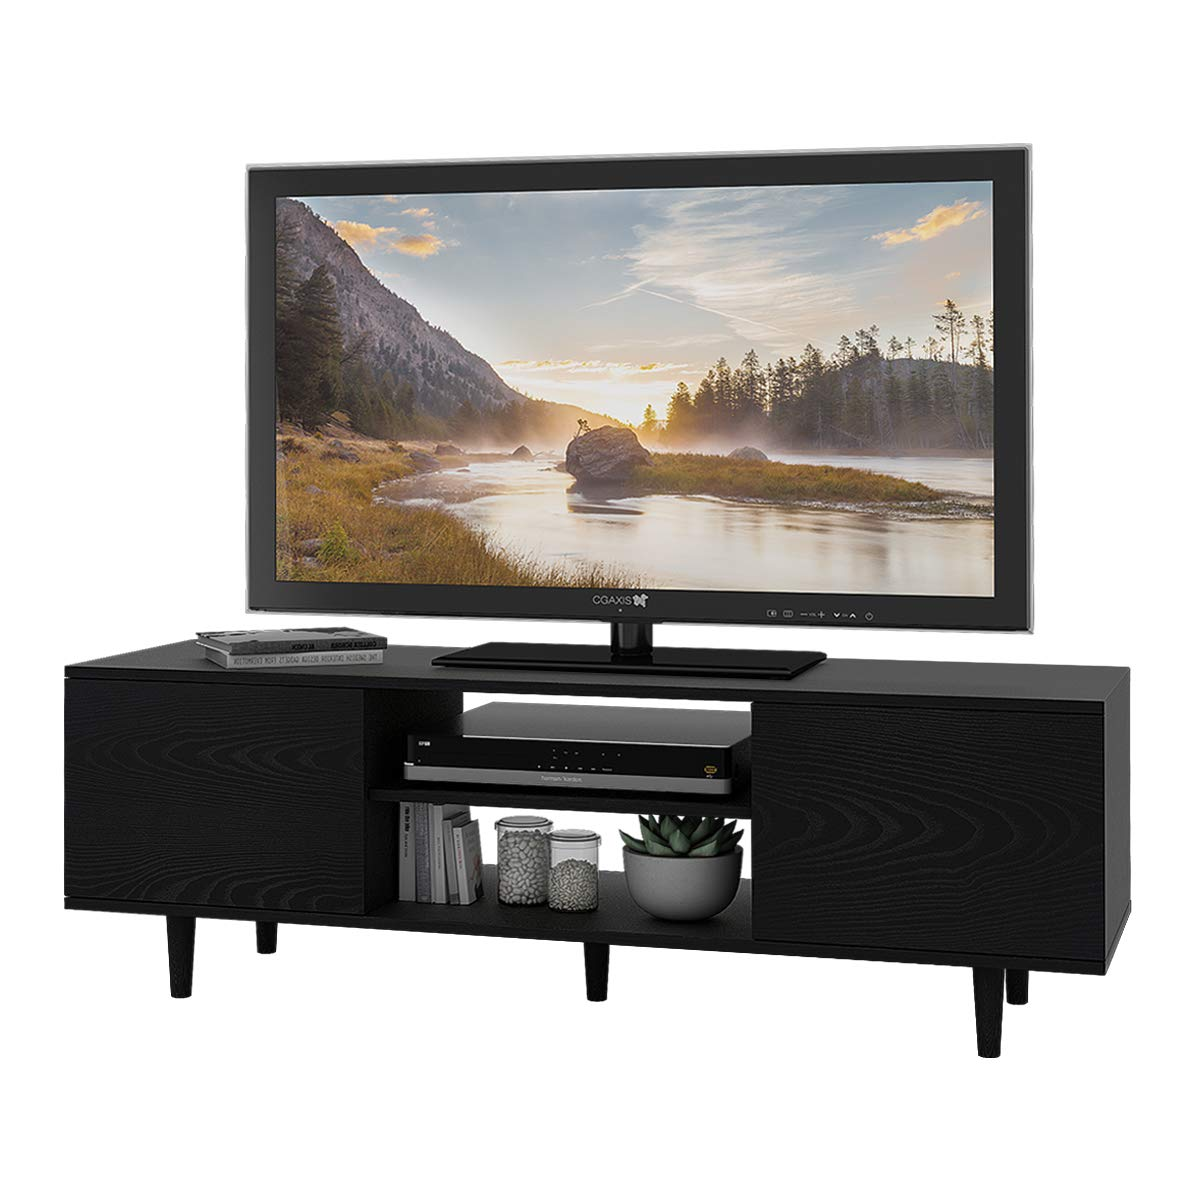 """WLIVE Mid-Century Modern TV Stand for 55"""" TV in Living Room Entertainment Center"""